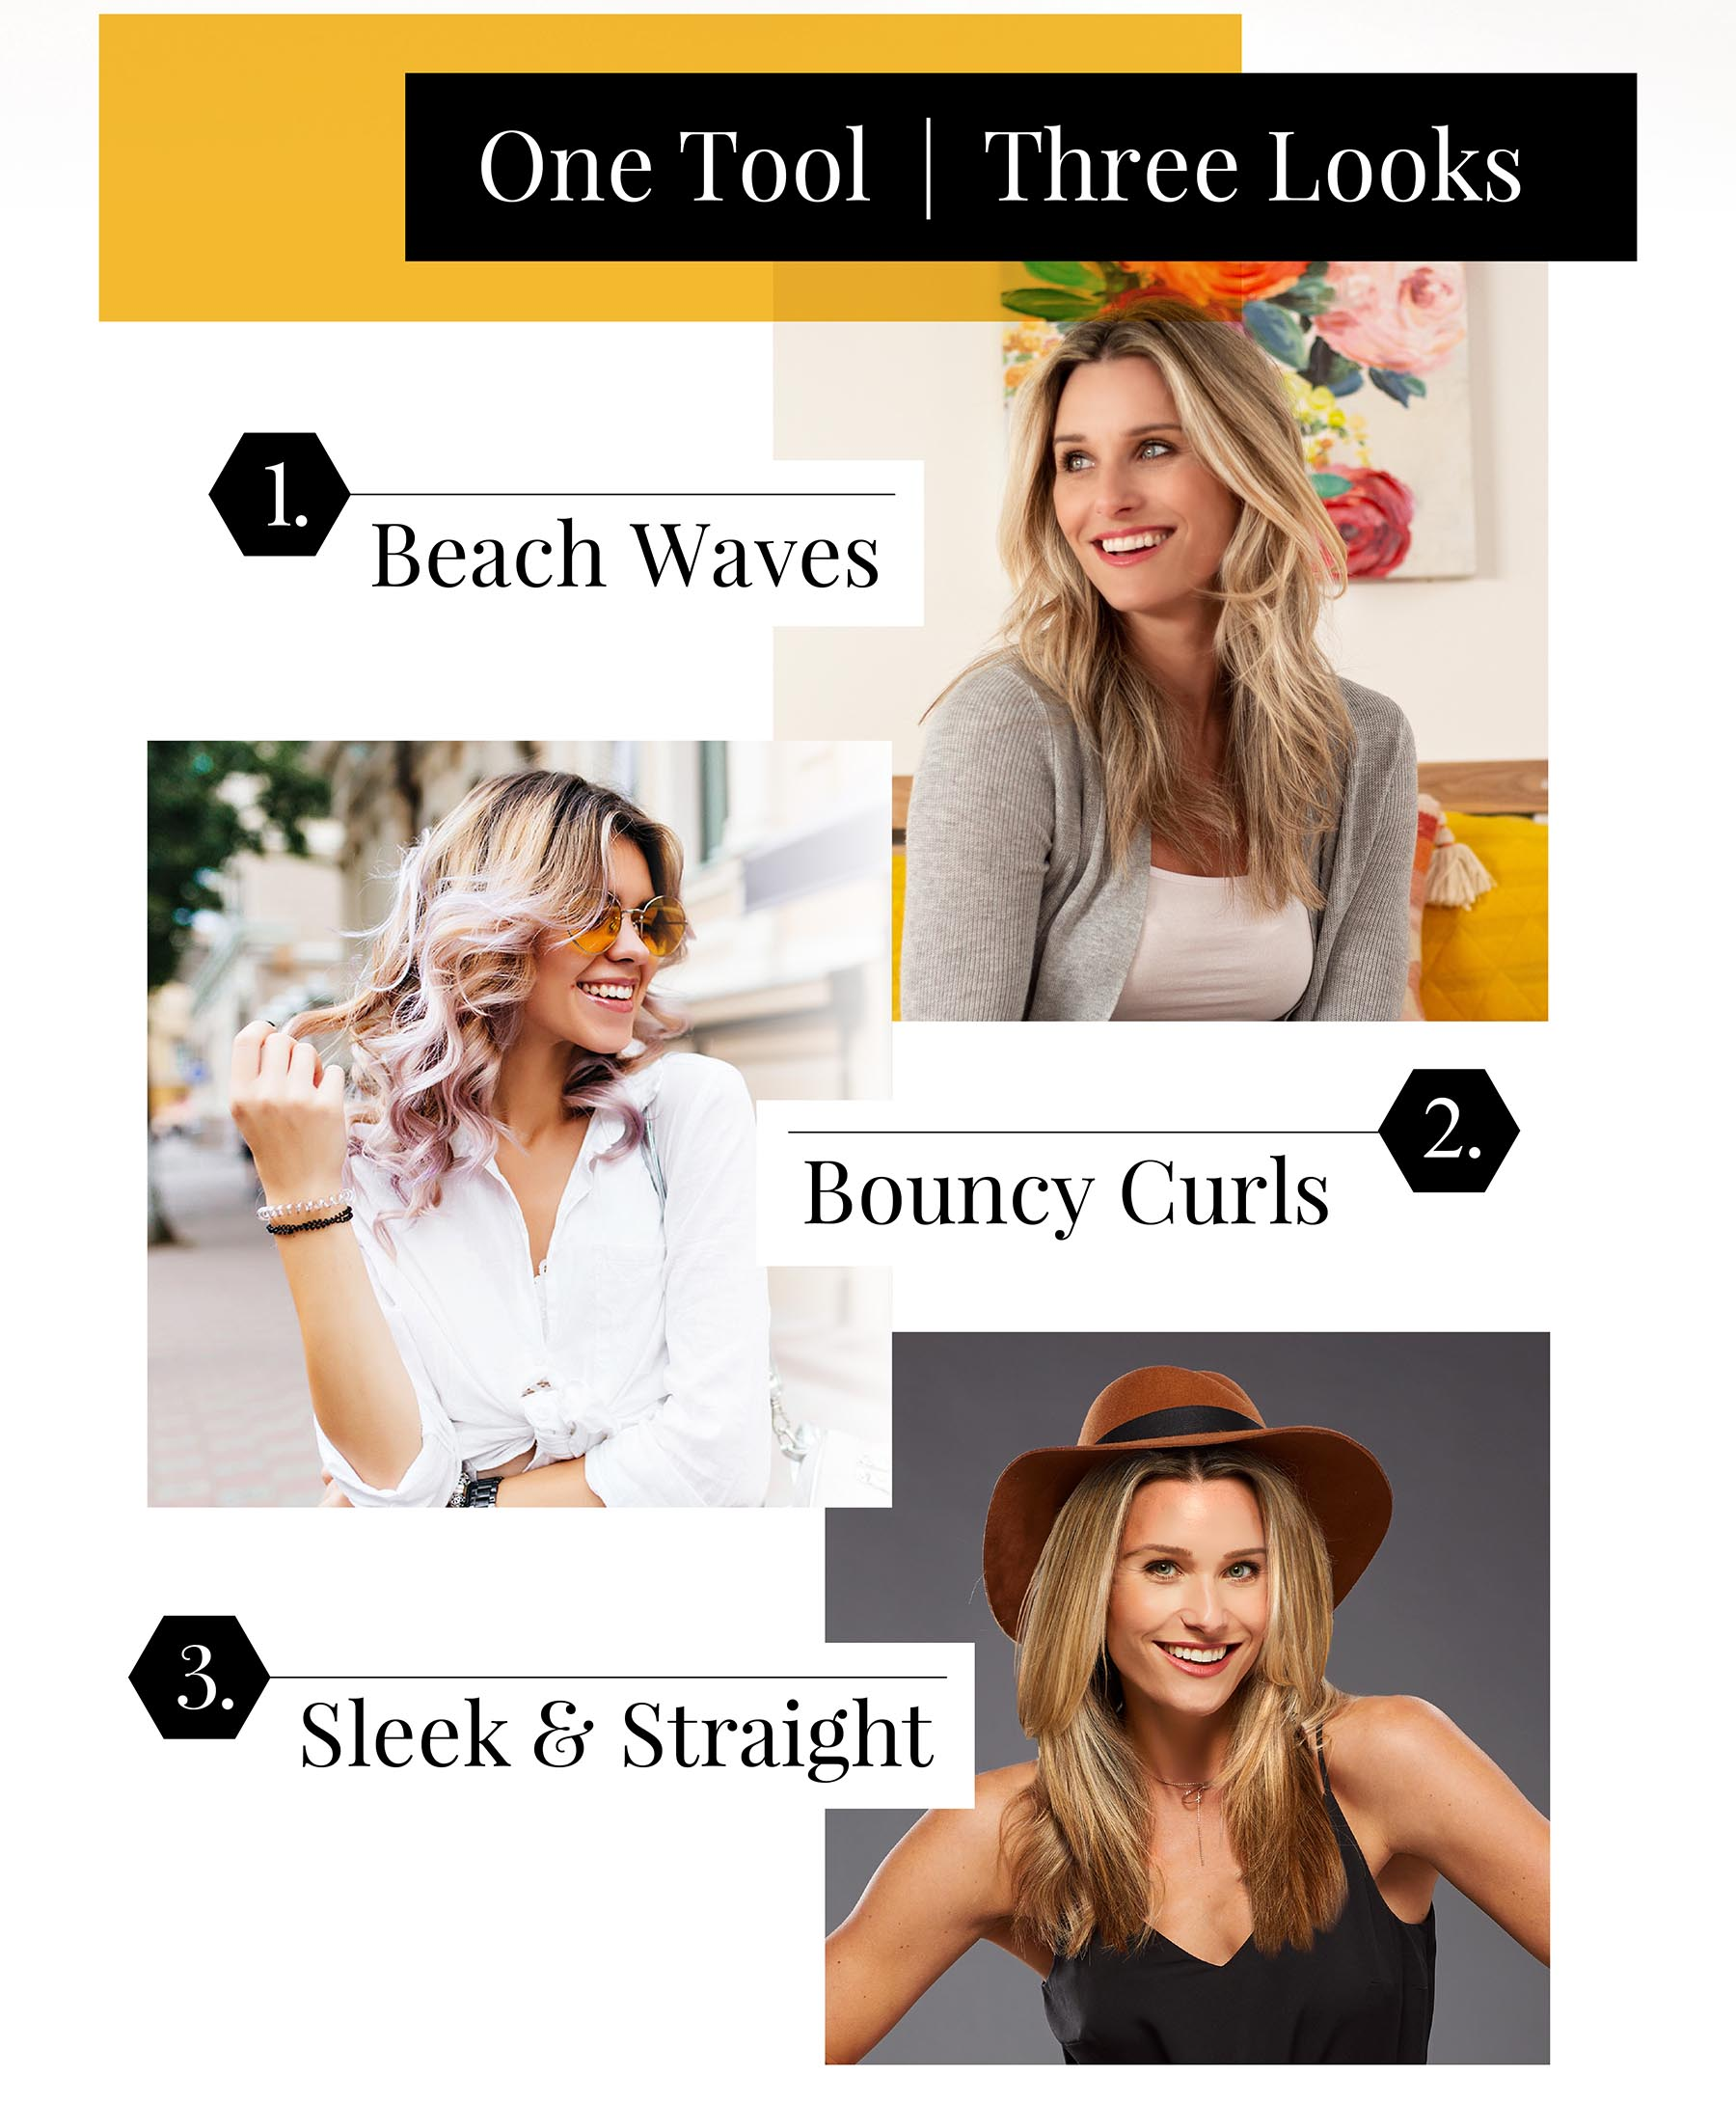 One Tool | Three Looks. 1. Beach Waves 2. Bouncy Curls 3. Sleet & Straight.